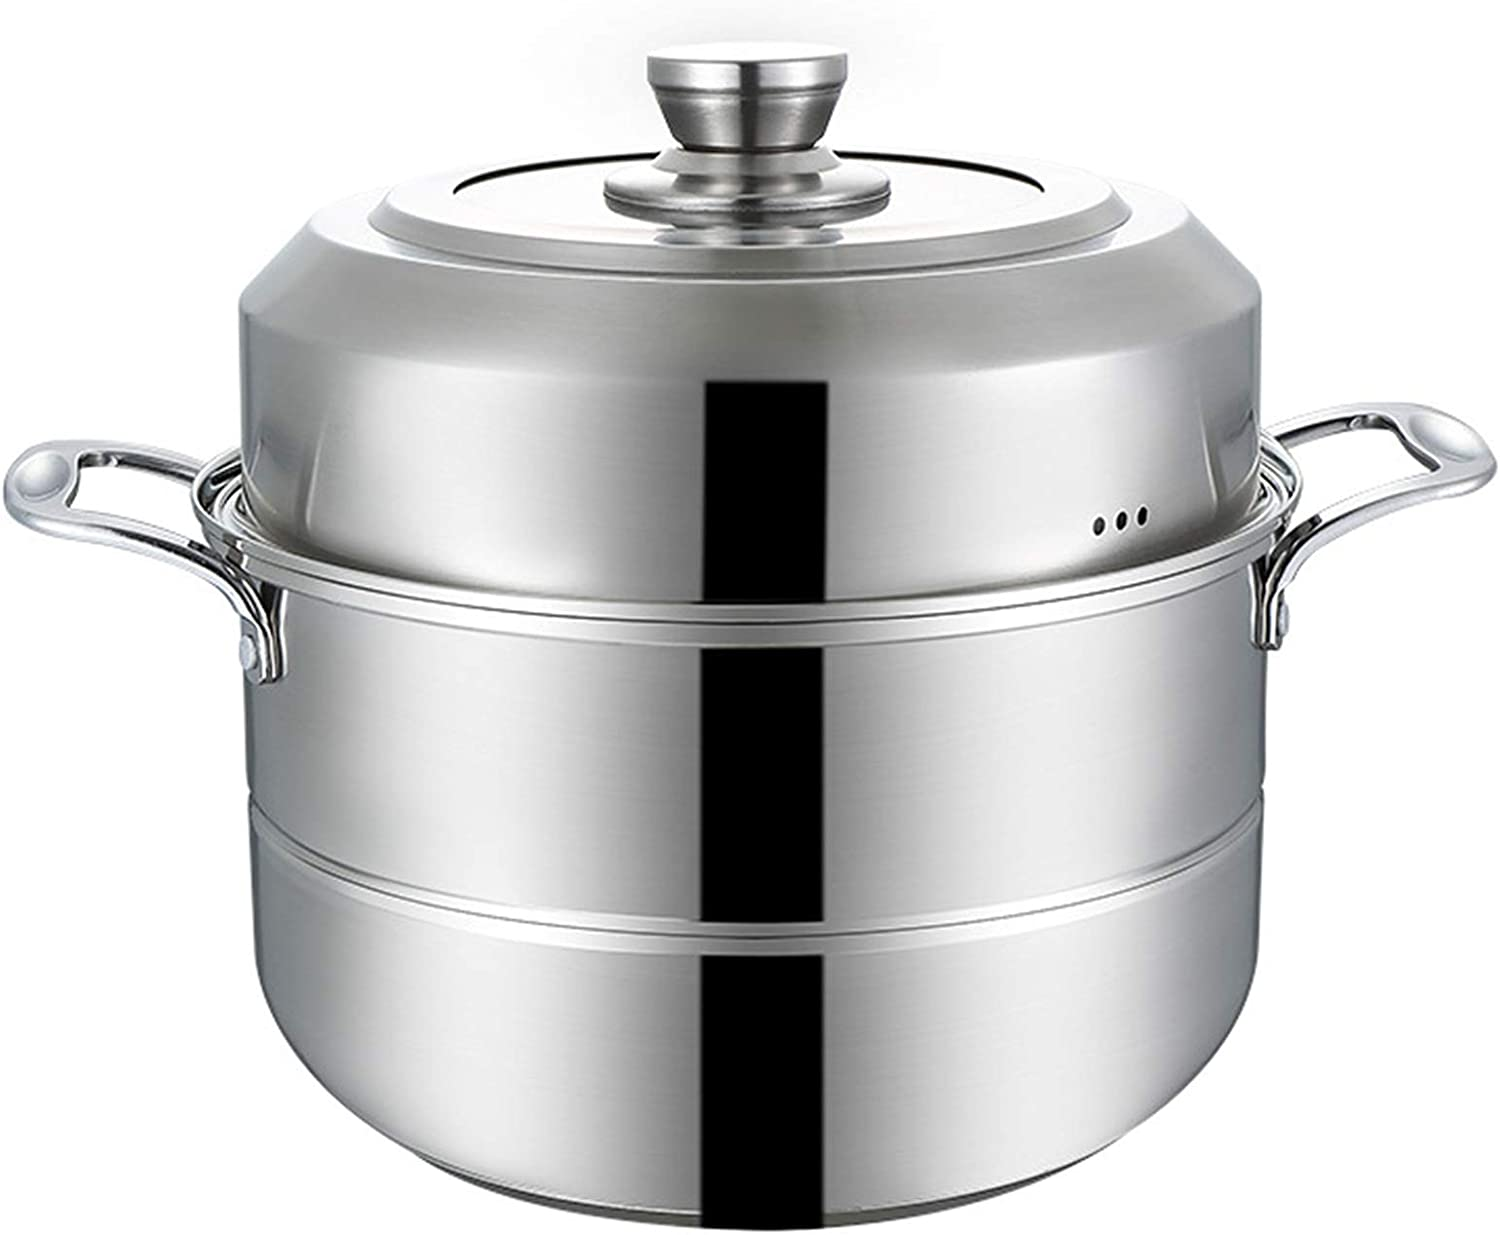 Stainless Steel Steamer, Multi-Layer Boiler Pot with Handles on Both Sides, Food Steamer Steamer Pot Cookware Pot with Lid, for Kitchen,Two layers,26cm